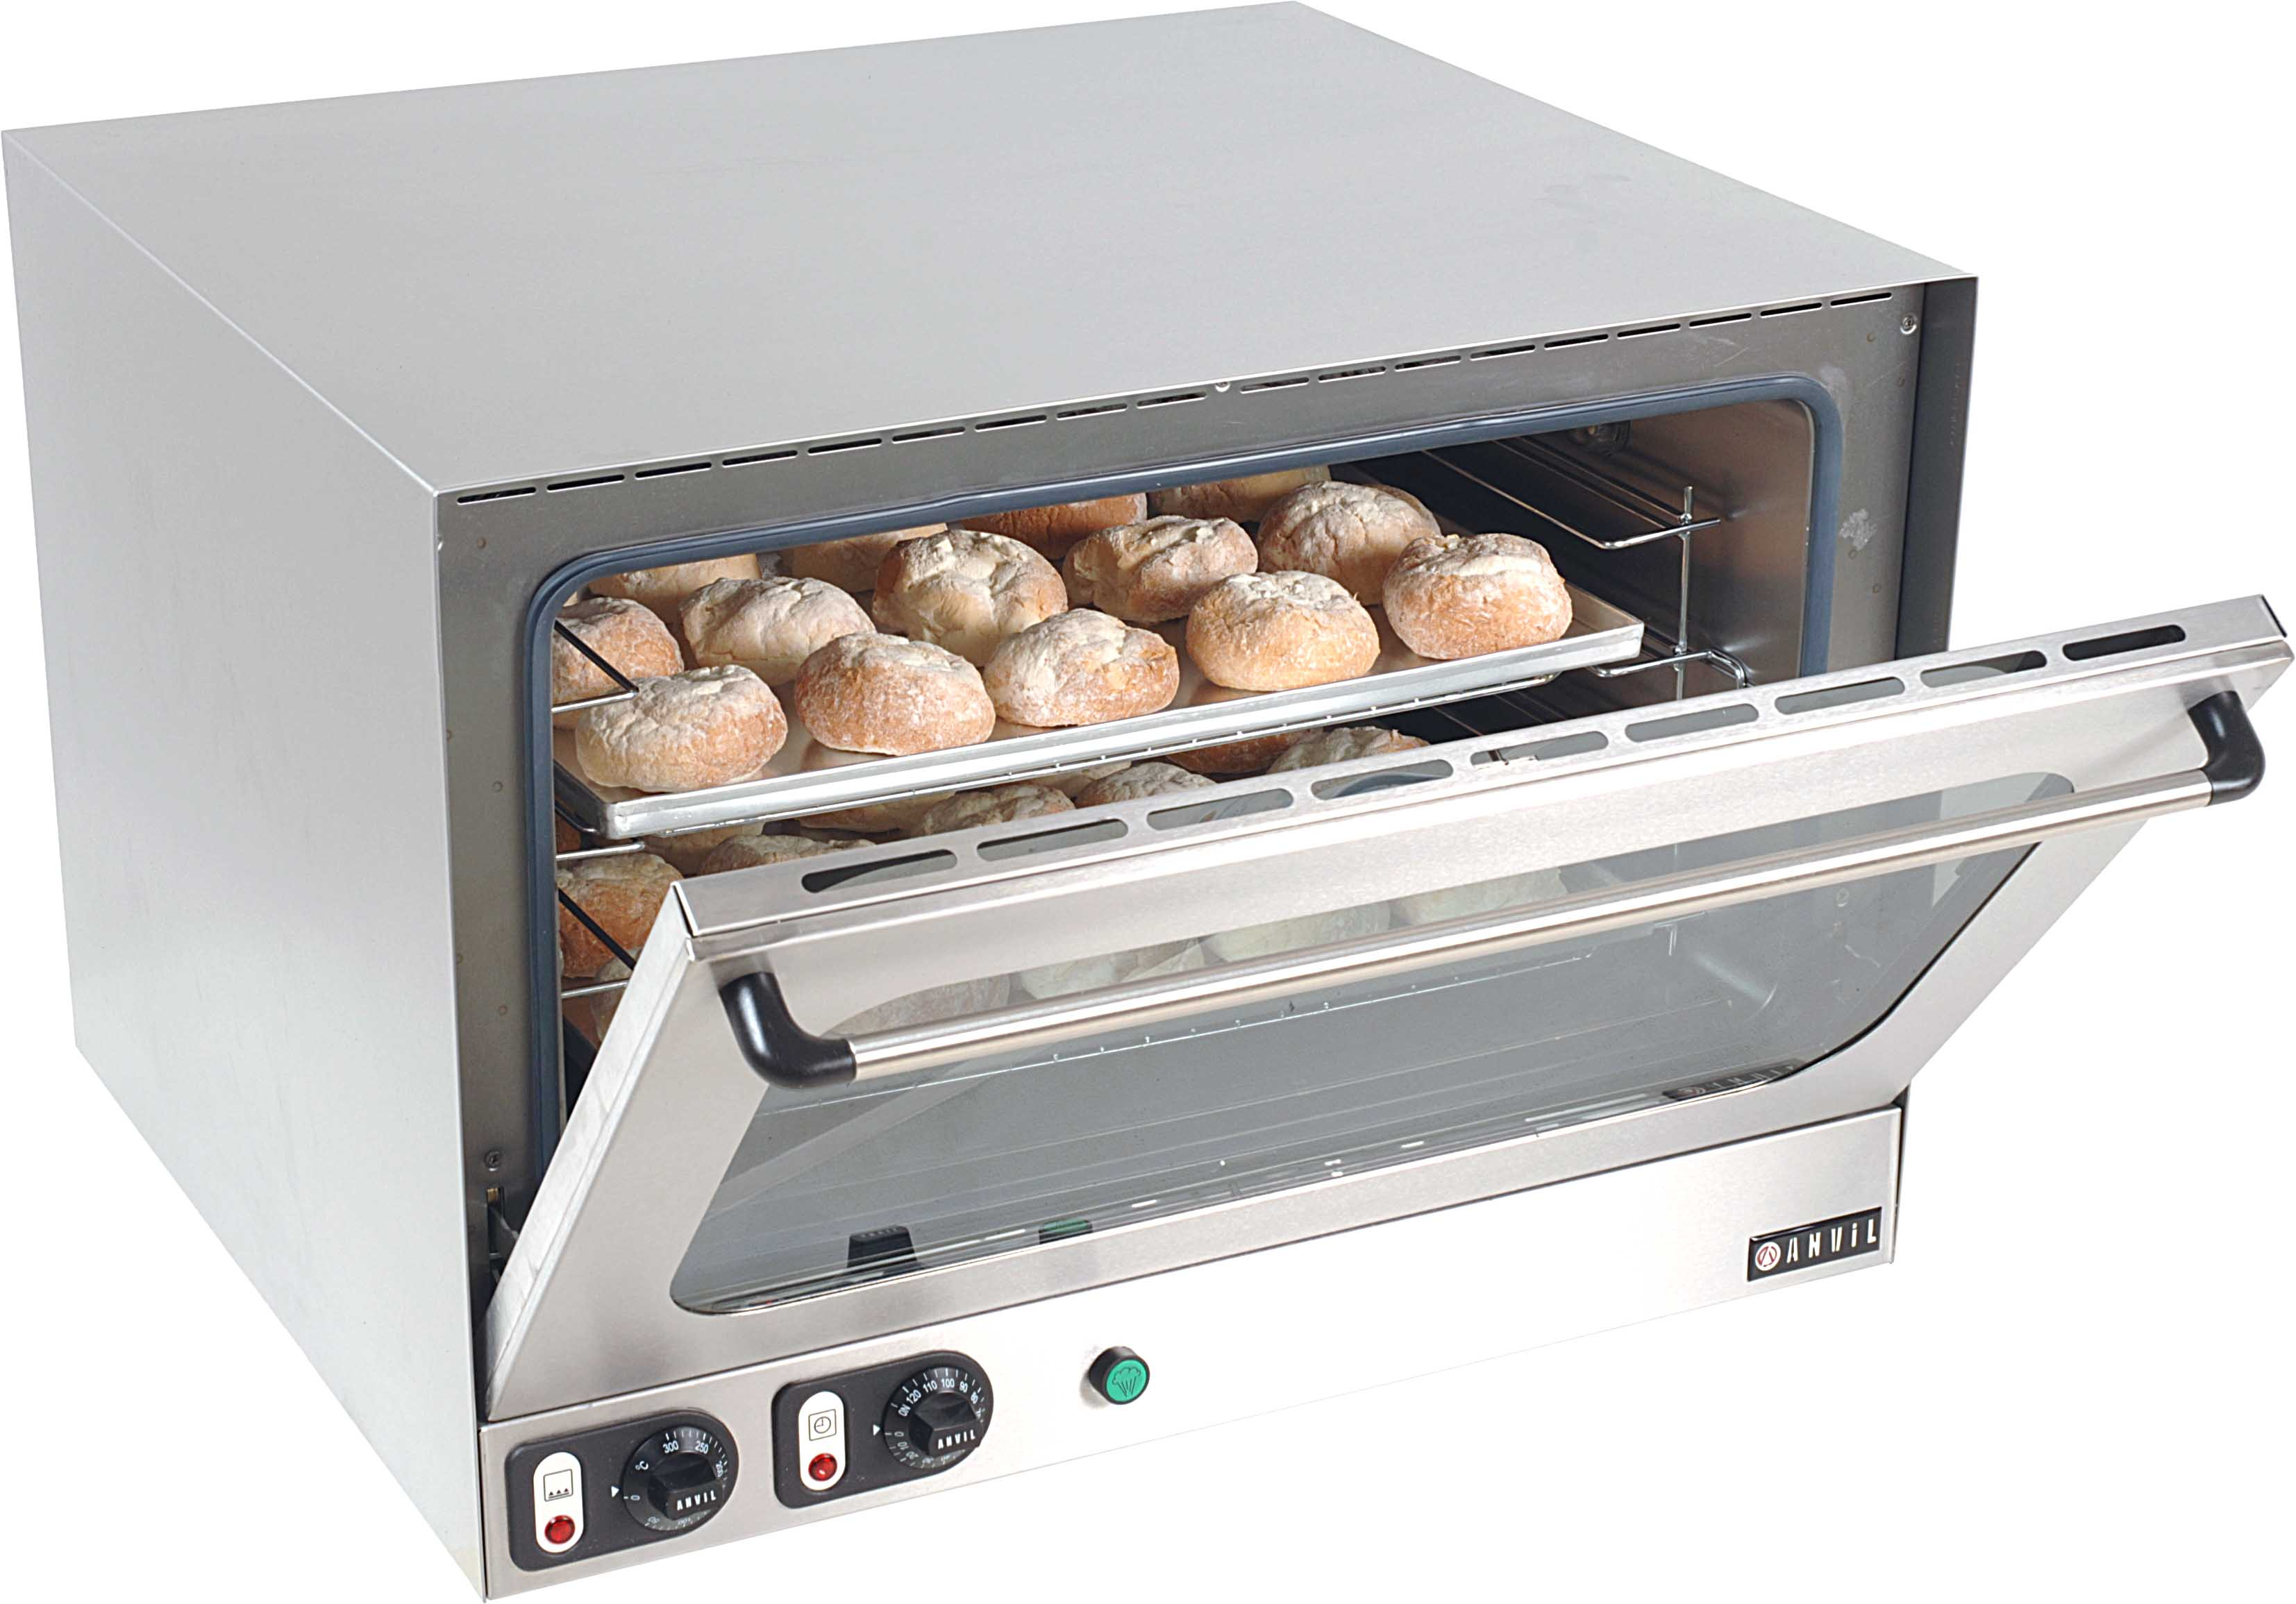 4 Pan (Wide) Convection Oven – Anvil